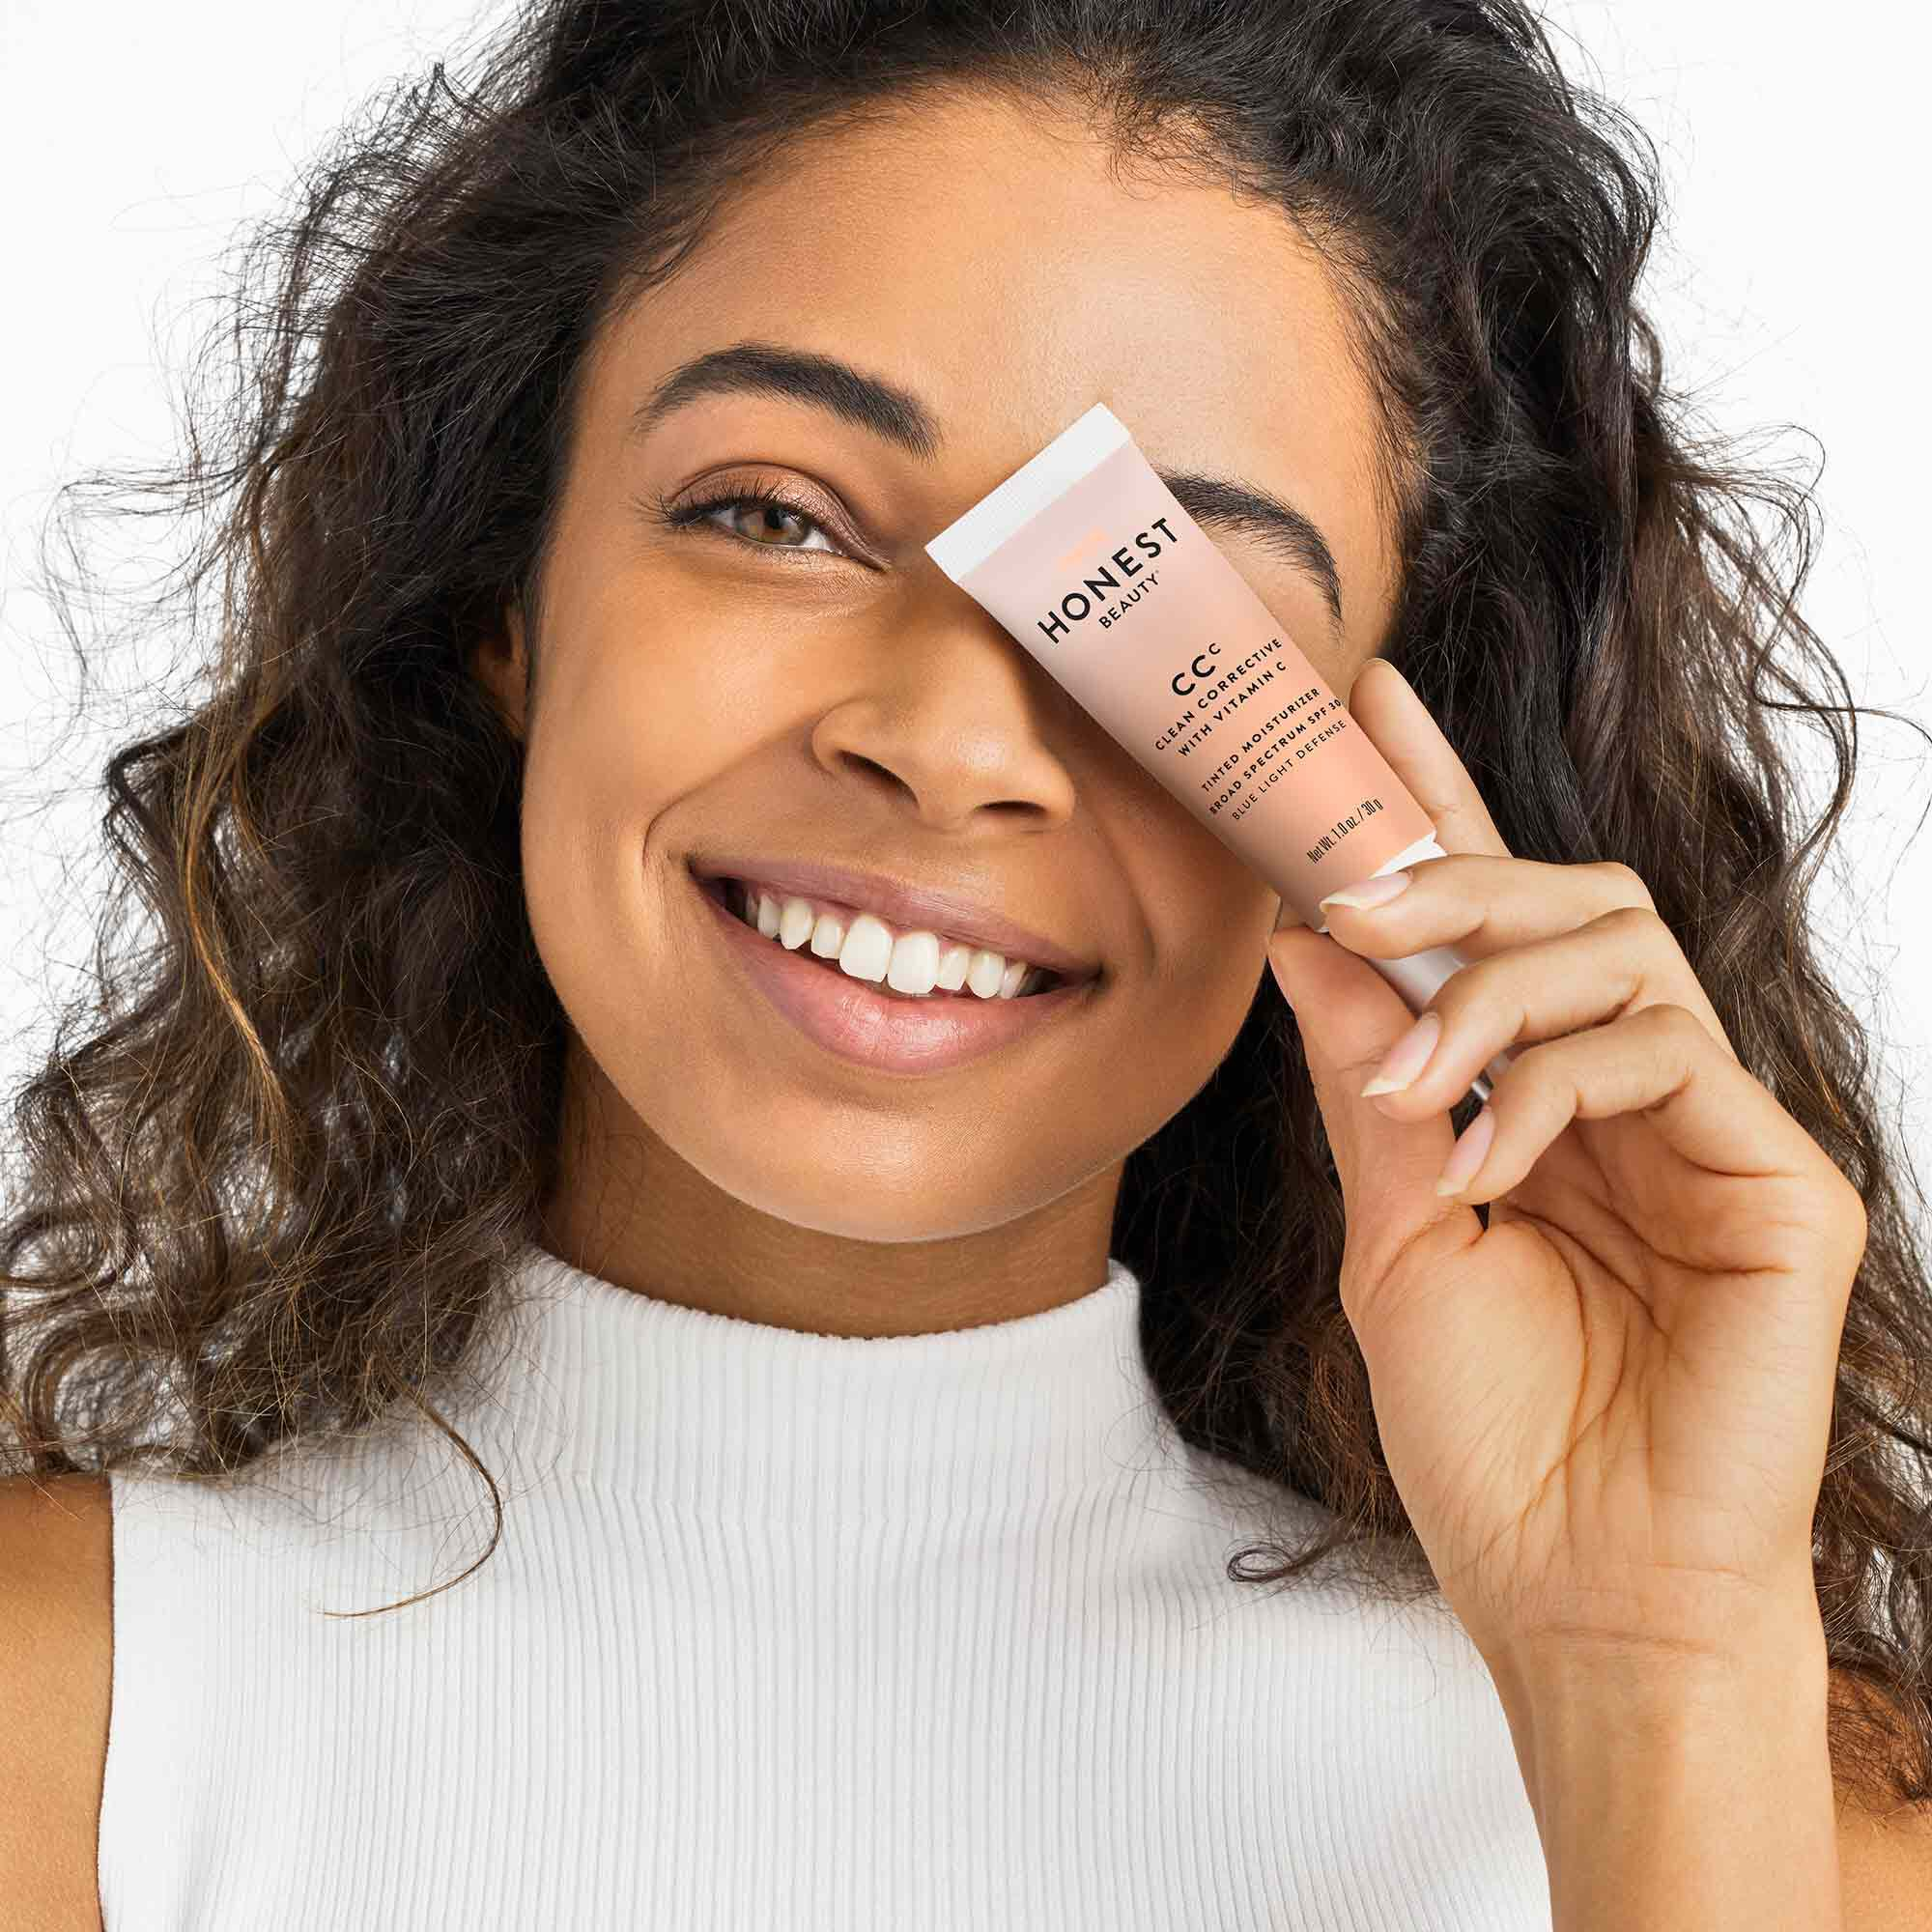 model holding moisturizer product